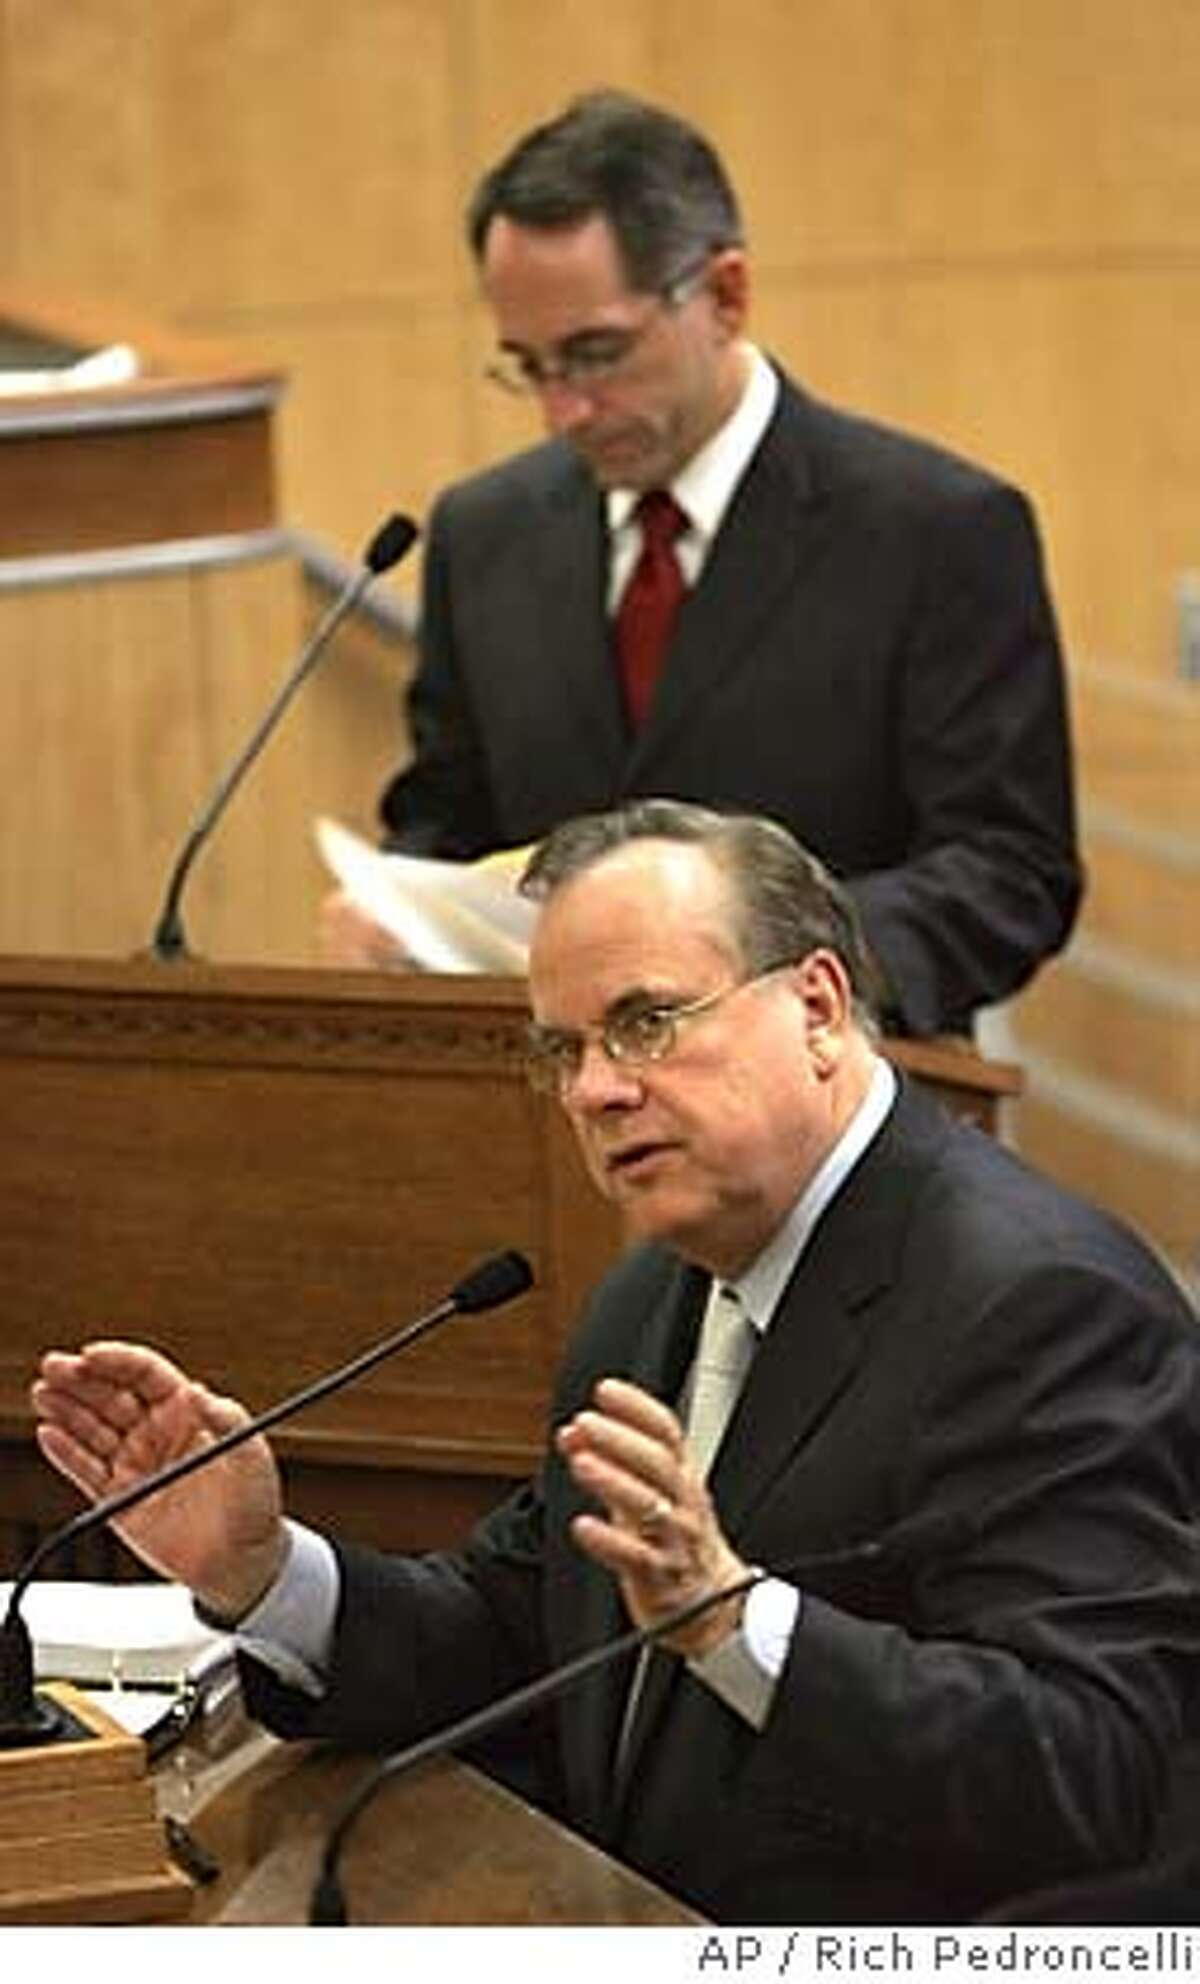 Attorney General Bill Lockyer, front, urges lawmakers to approve a measure that would require a serial number on bullets sold in California, during a hearing of the Senate Public Safety Committee at the Capitol in Sacramento, Calif., Tuesday, April 26, 2005. The bill, authored by state Sen. Joe Dunn, D-Garden Grove, back, was approved by a 4-2 vote. (AP Photo/Rich Pedroncelli)